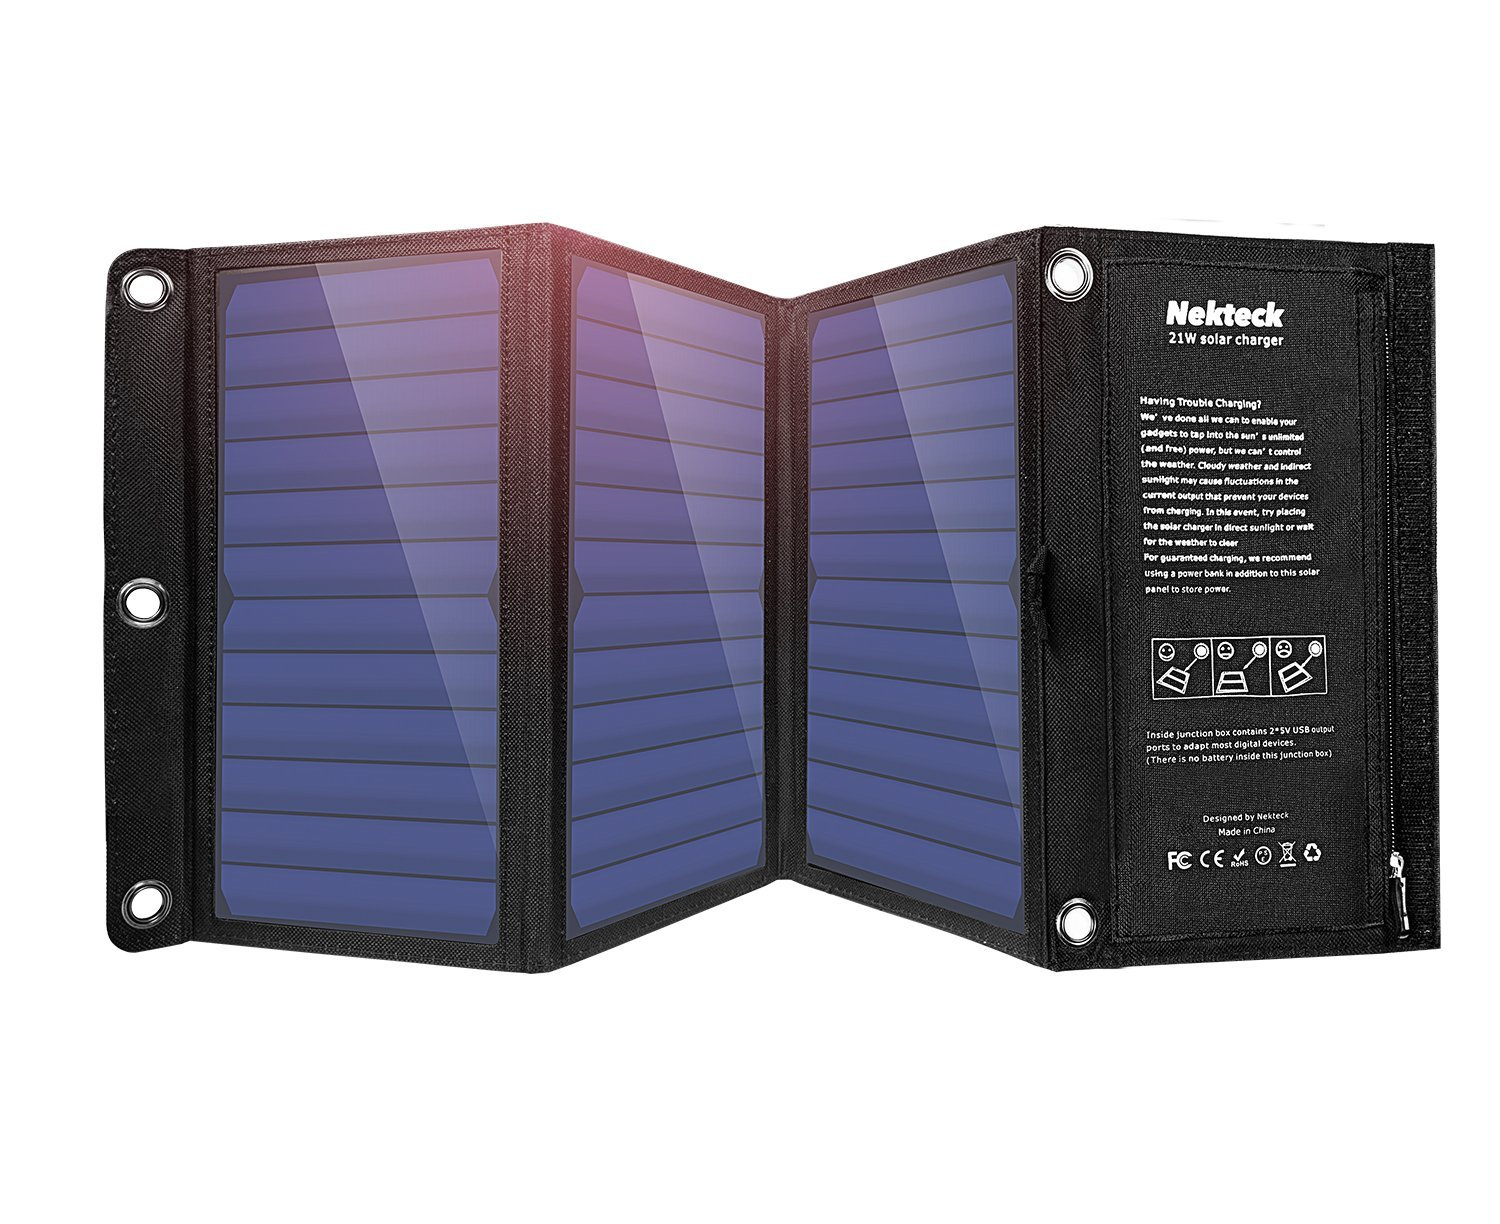 Nekteck-21W-Solar-Charger-with-2-Port-USB-Charger-Build-with-High-efficiency-Solar-Panel-Cell-for-iPhone-6s--6--Plus-SE-iPad-Galaxy-S6-S7-Edge-Plus-Nexus-5X-6P-any-USB-devices-and-more